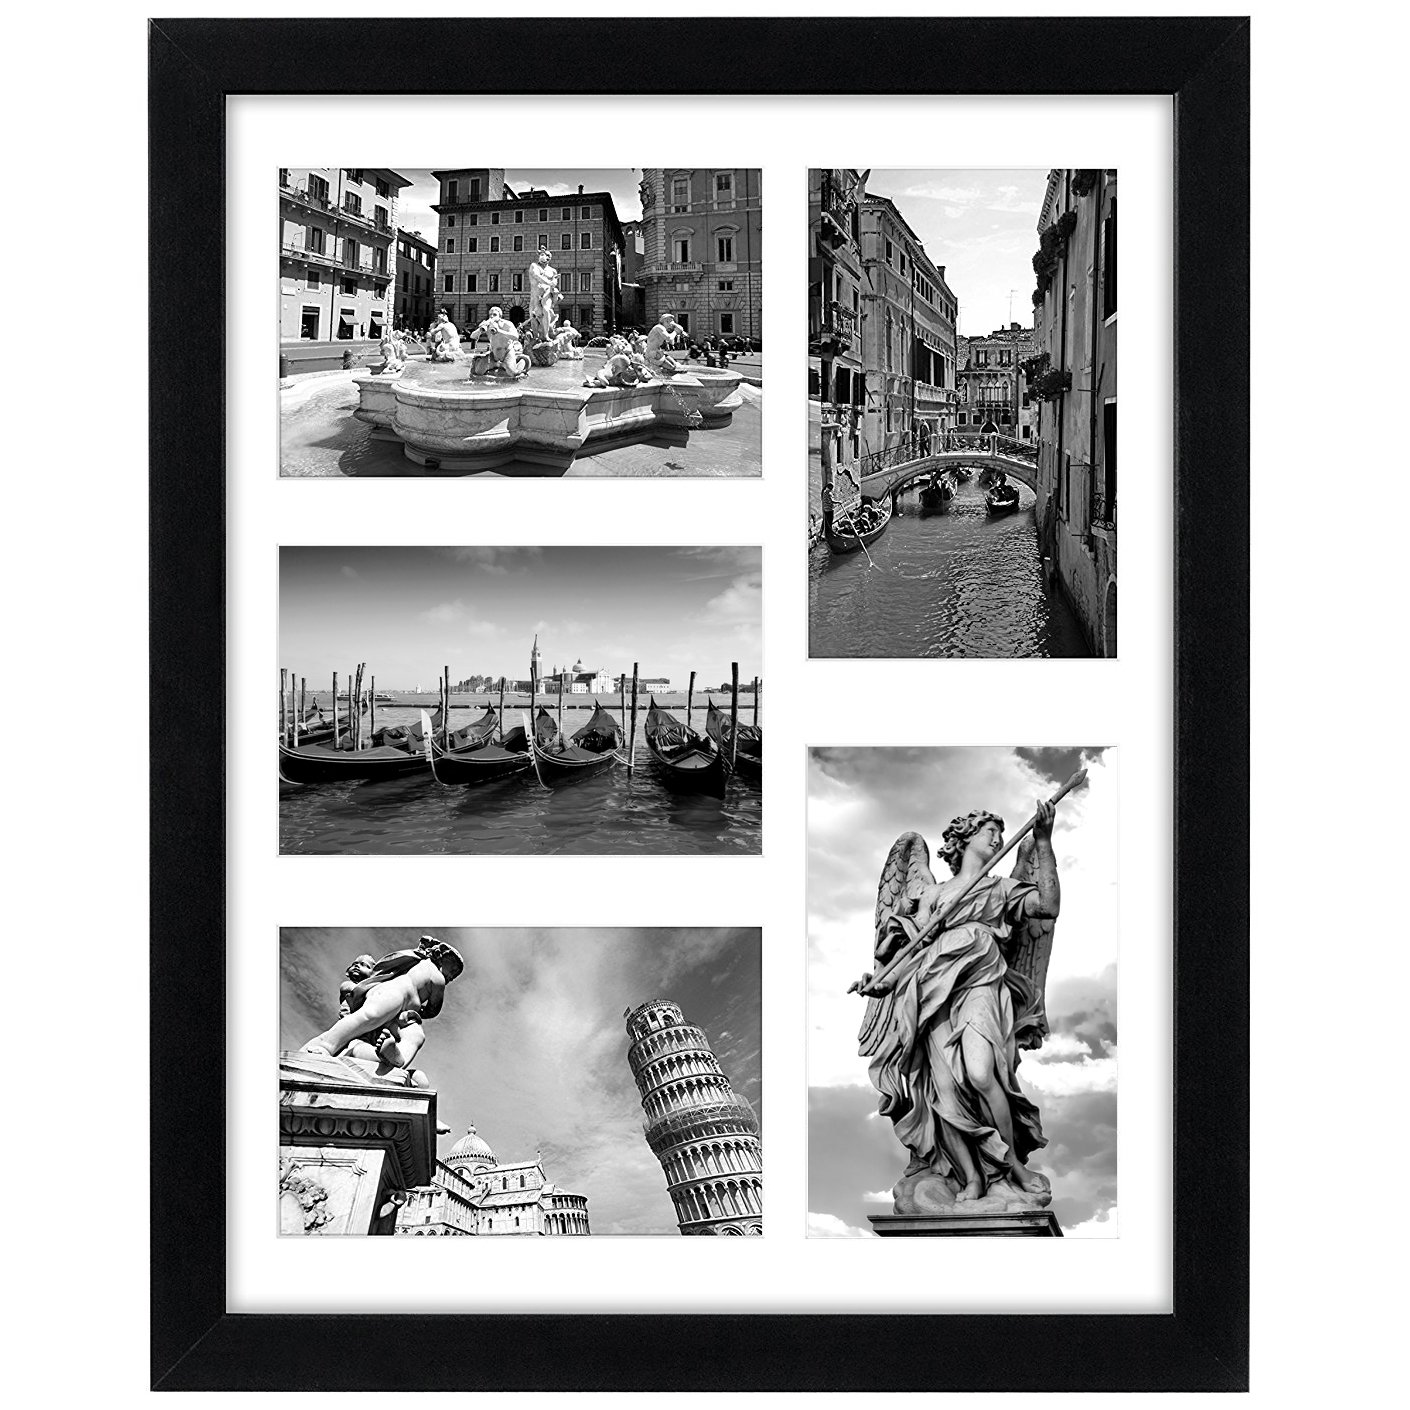 Americanflat 11×14 Collage Picture Frame in Black with Five 4×6 Picture Displays – Composite Wood with Shatter Resistant…